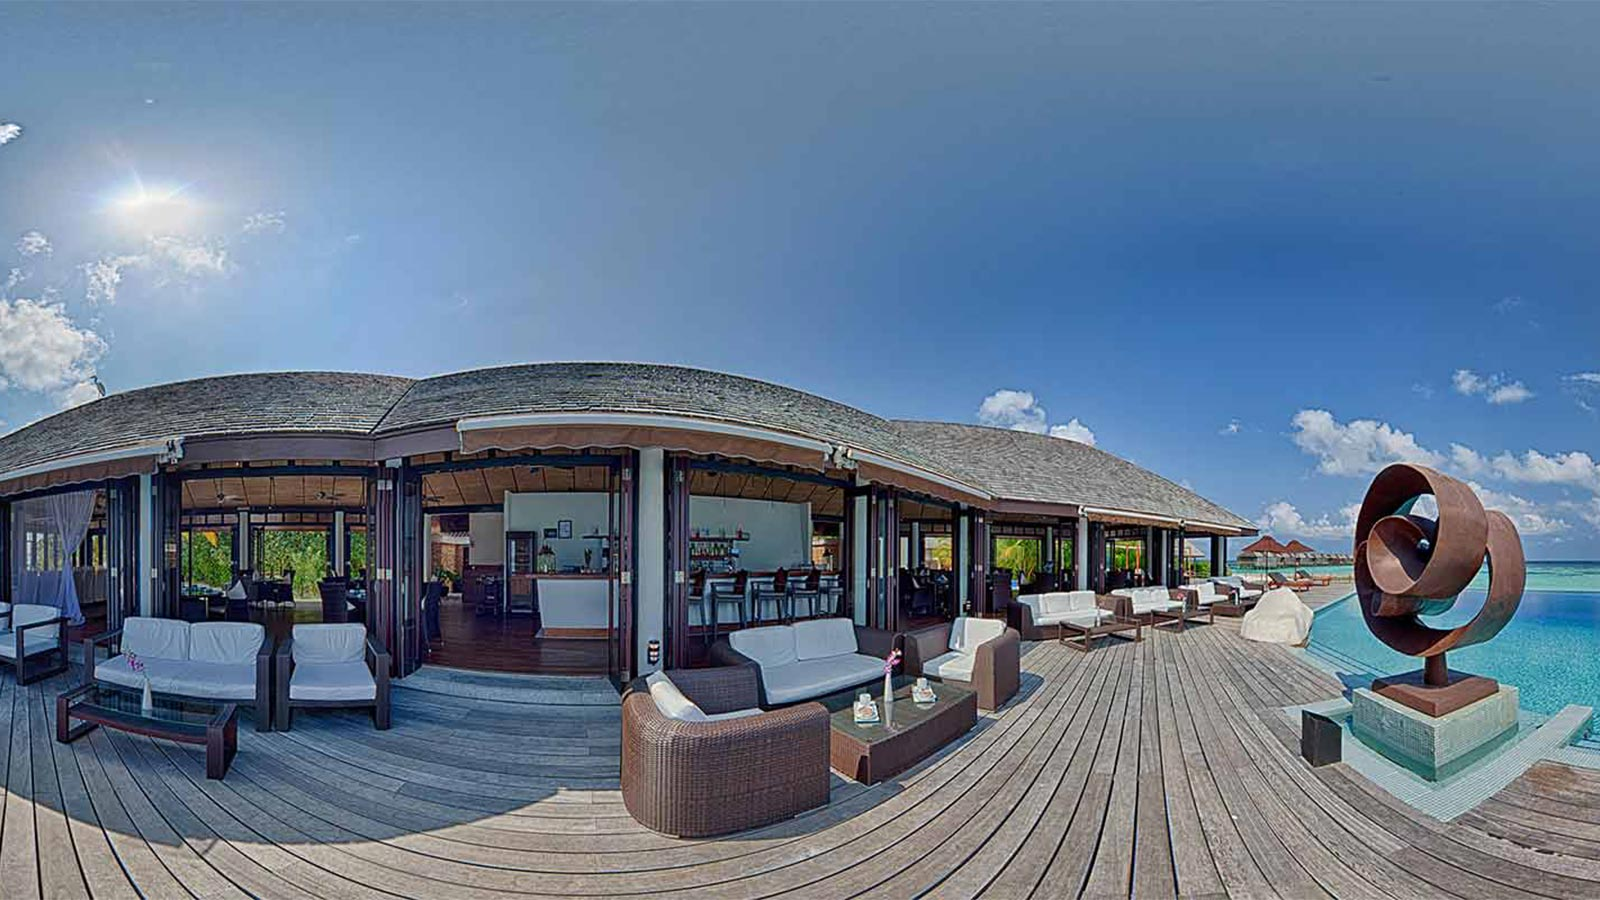 Aqva Bar Lily Beach Maldives 360 Tour